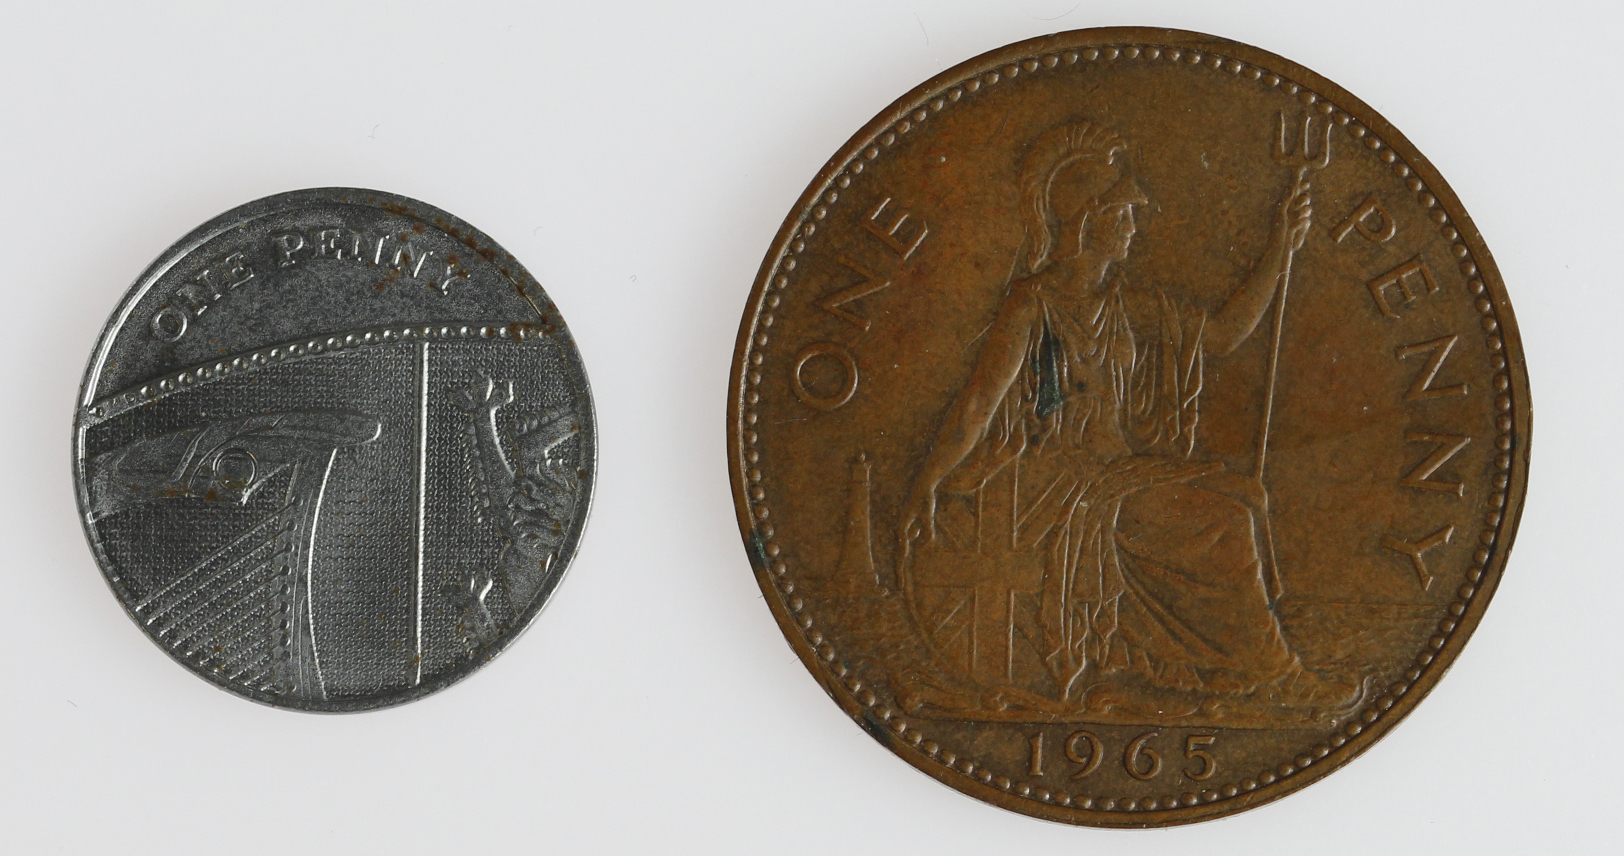 GB Error / anomalous coins (2): Penny 1965 missing some surface obverse, along with the steel core